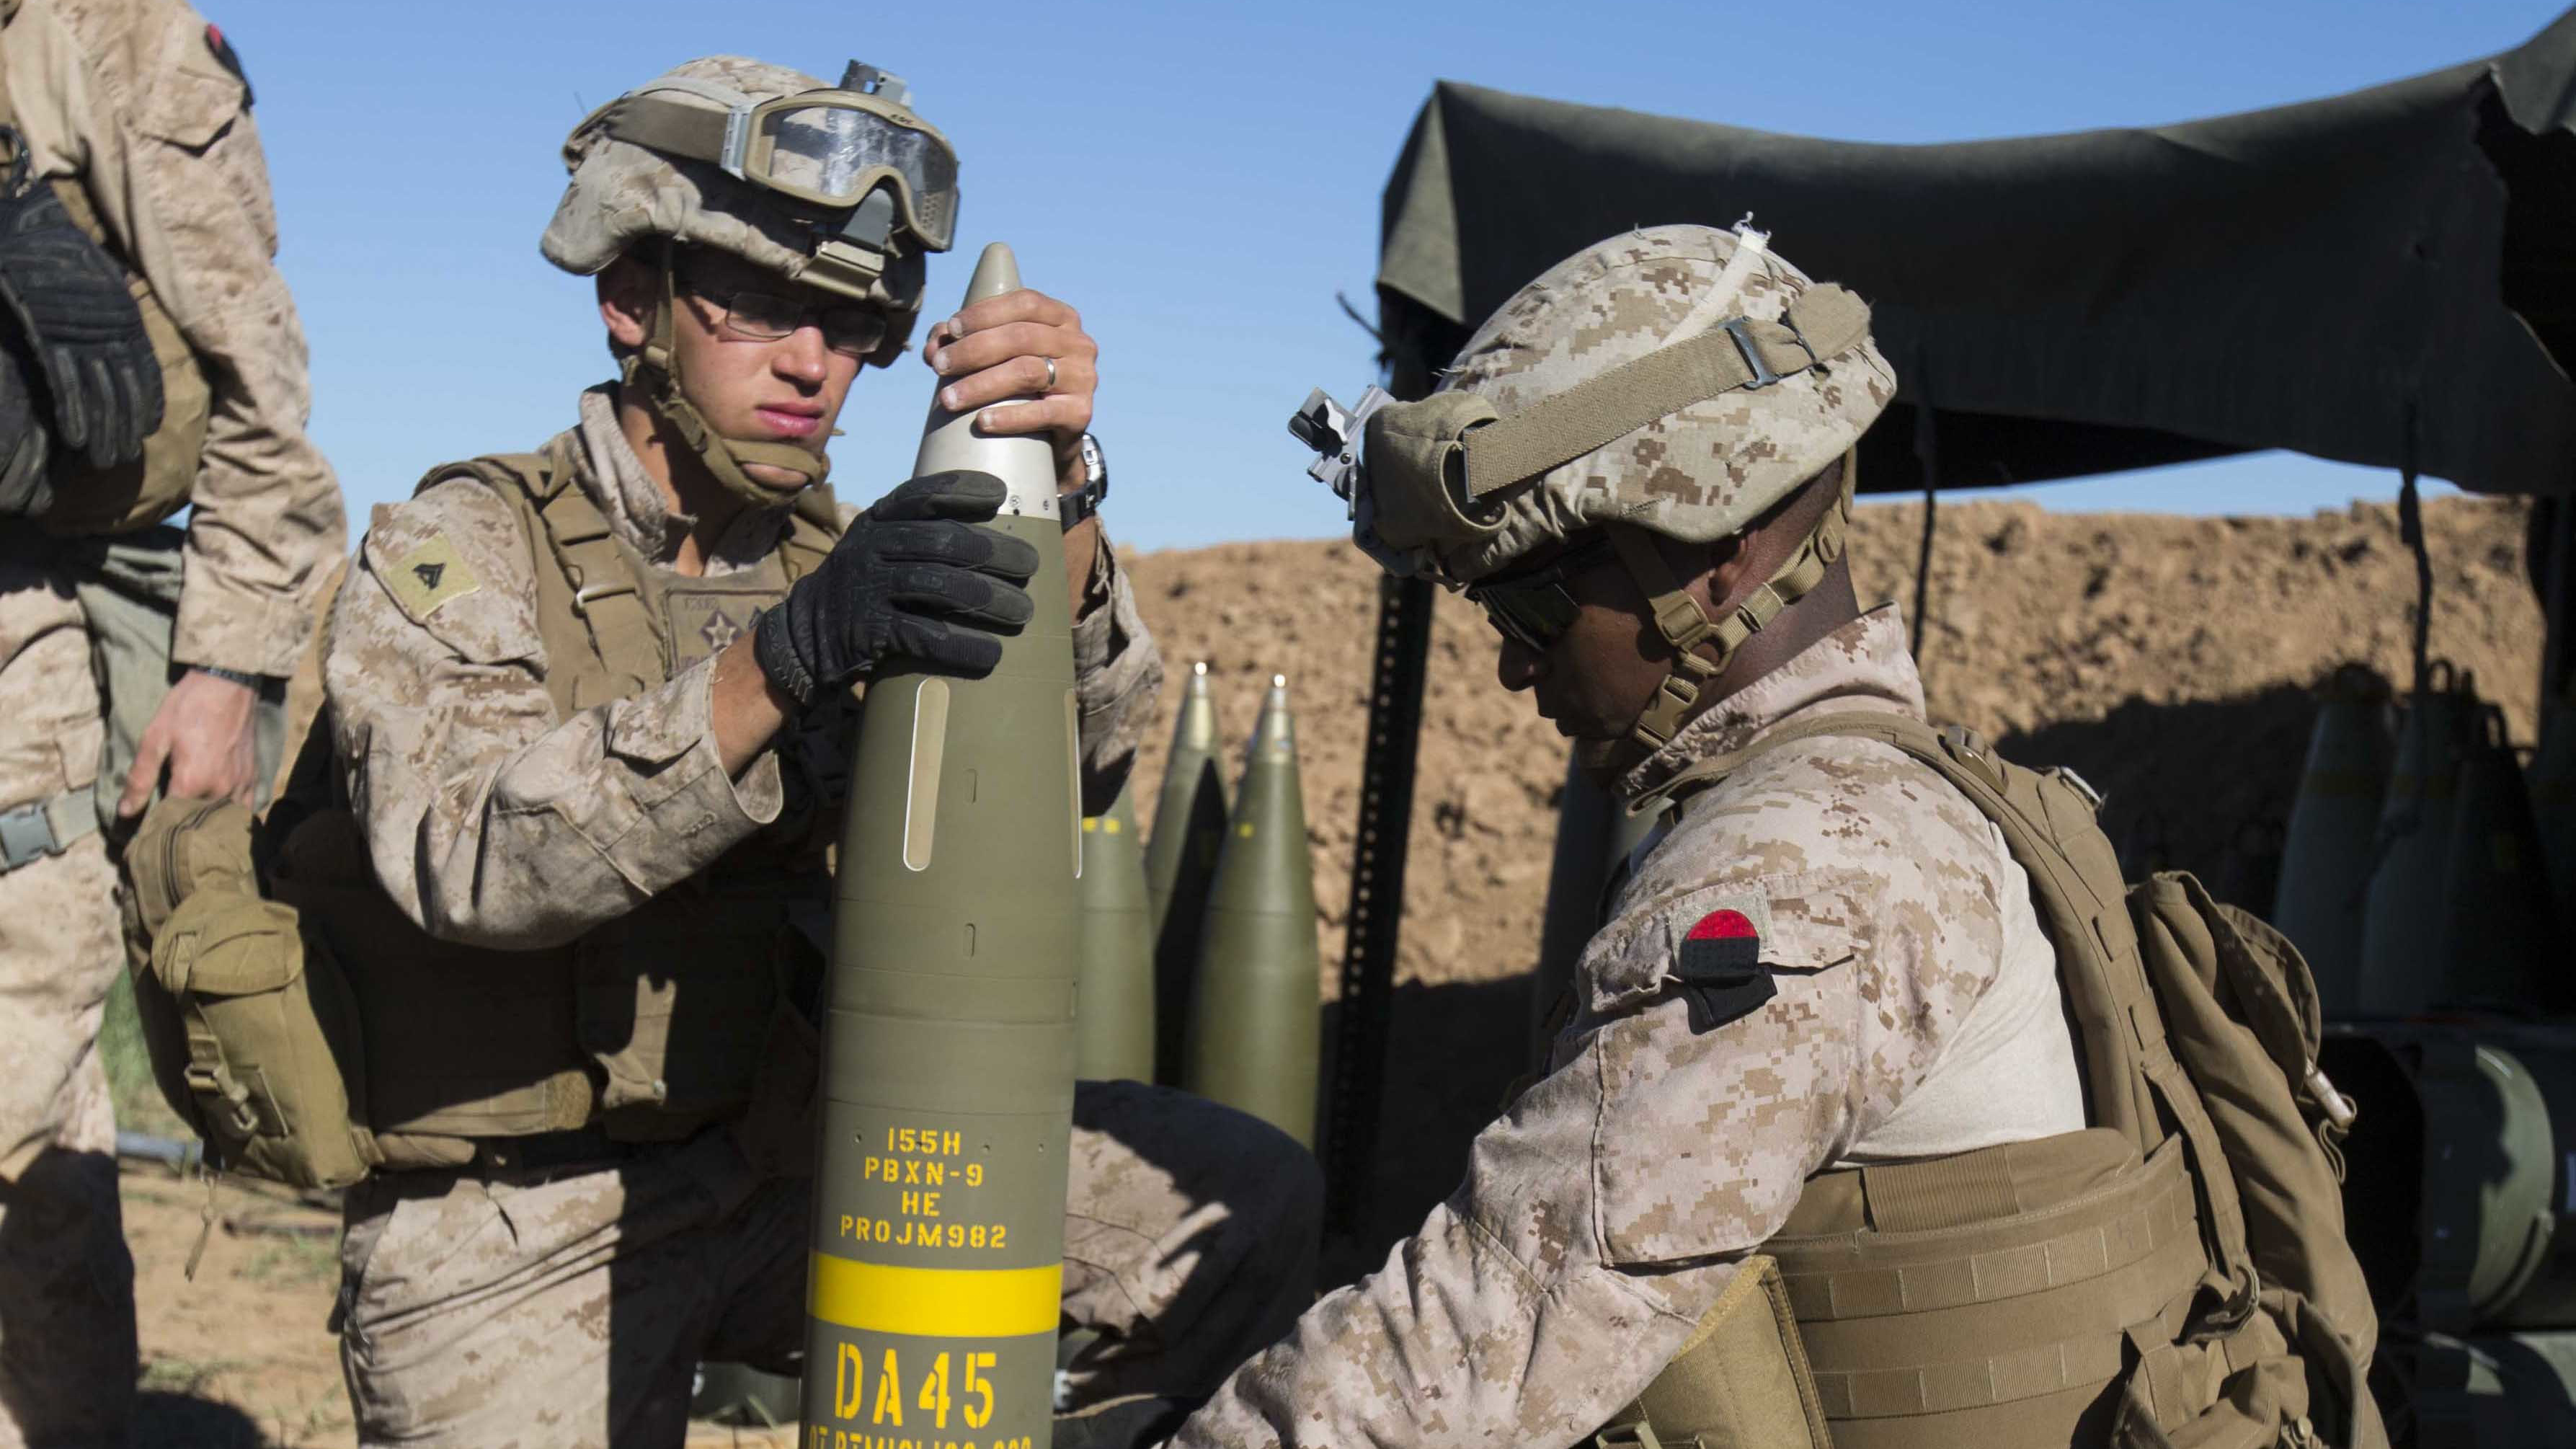 Marines prepare an Excalibur 155 mm projectile round on Fire Base Bell, Iraq, while conducting fire missions on March 18, 2016. US Marine Corps